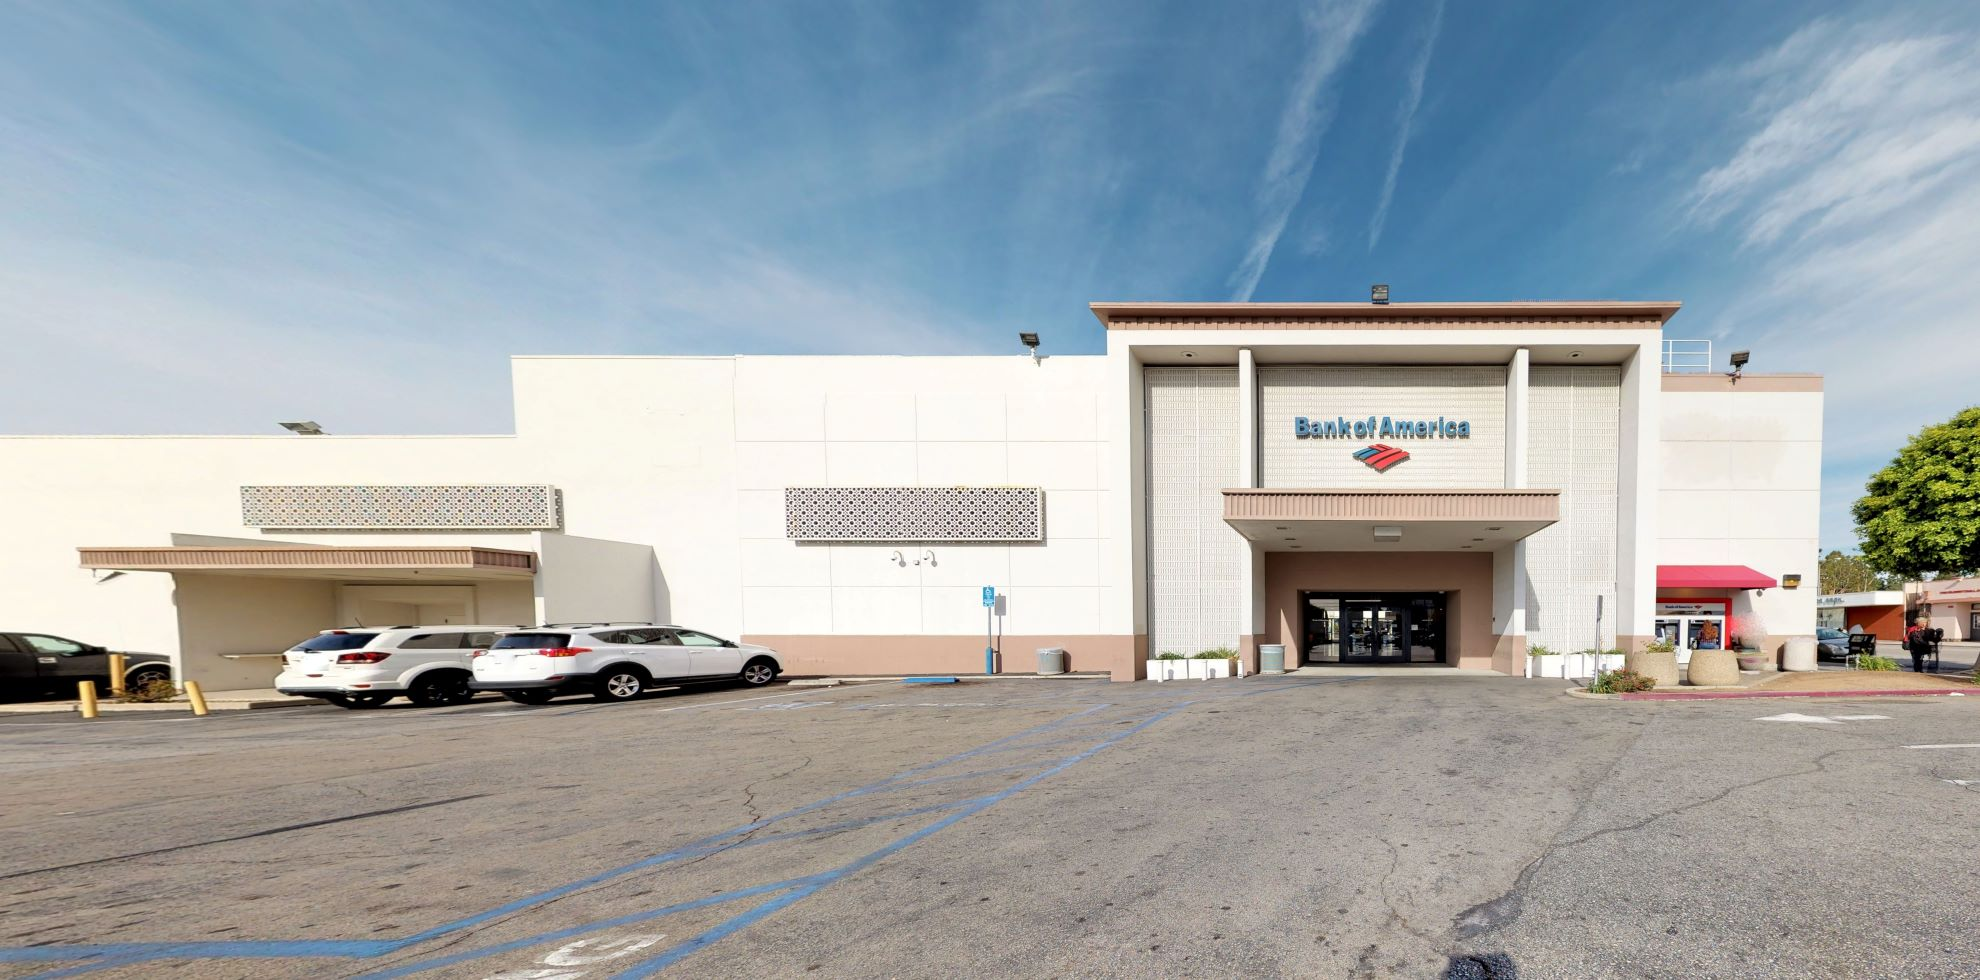 Bank of America financial center with walk-up ATM | 330 E Manchester Blvd, Inglewood, CA 90301